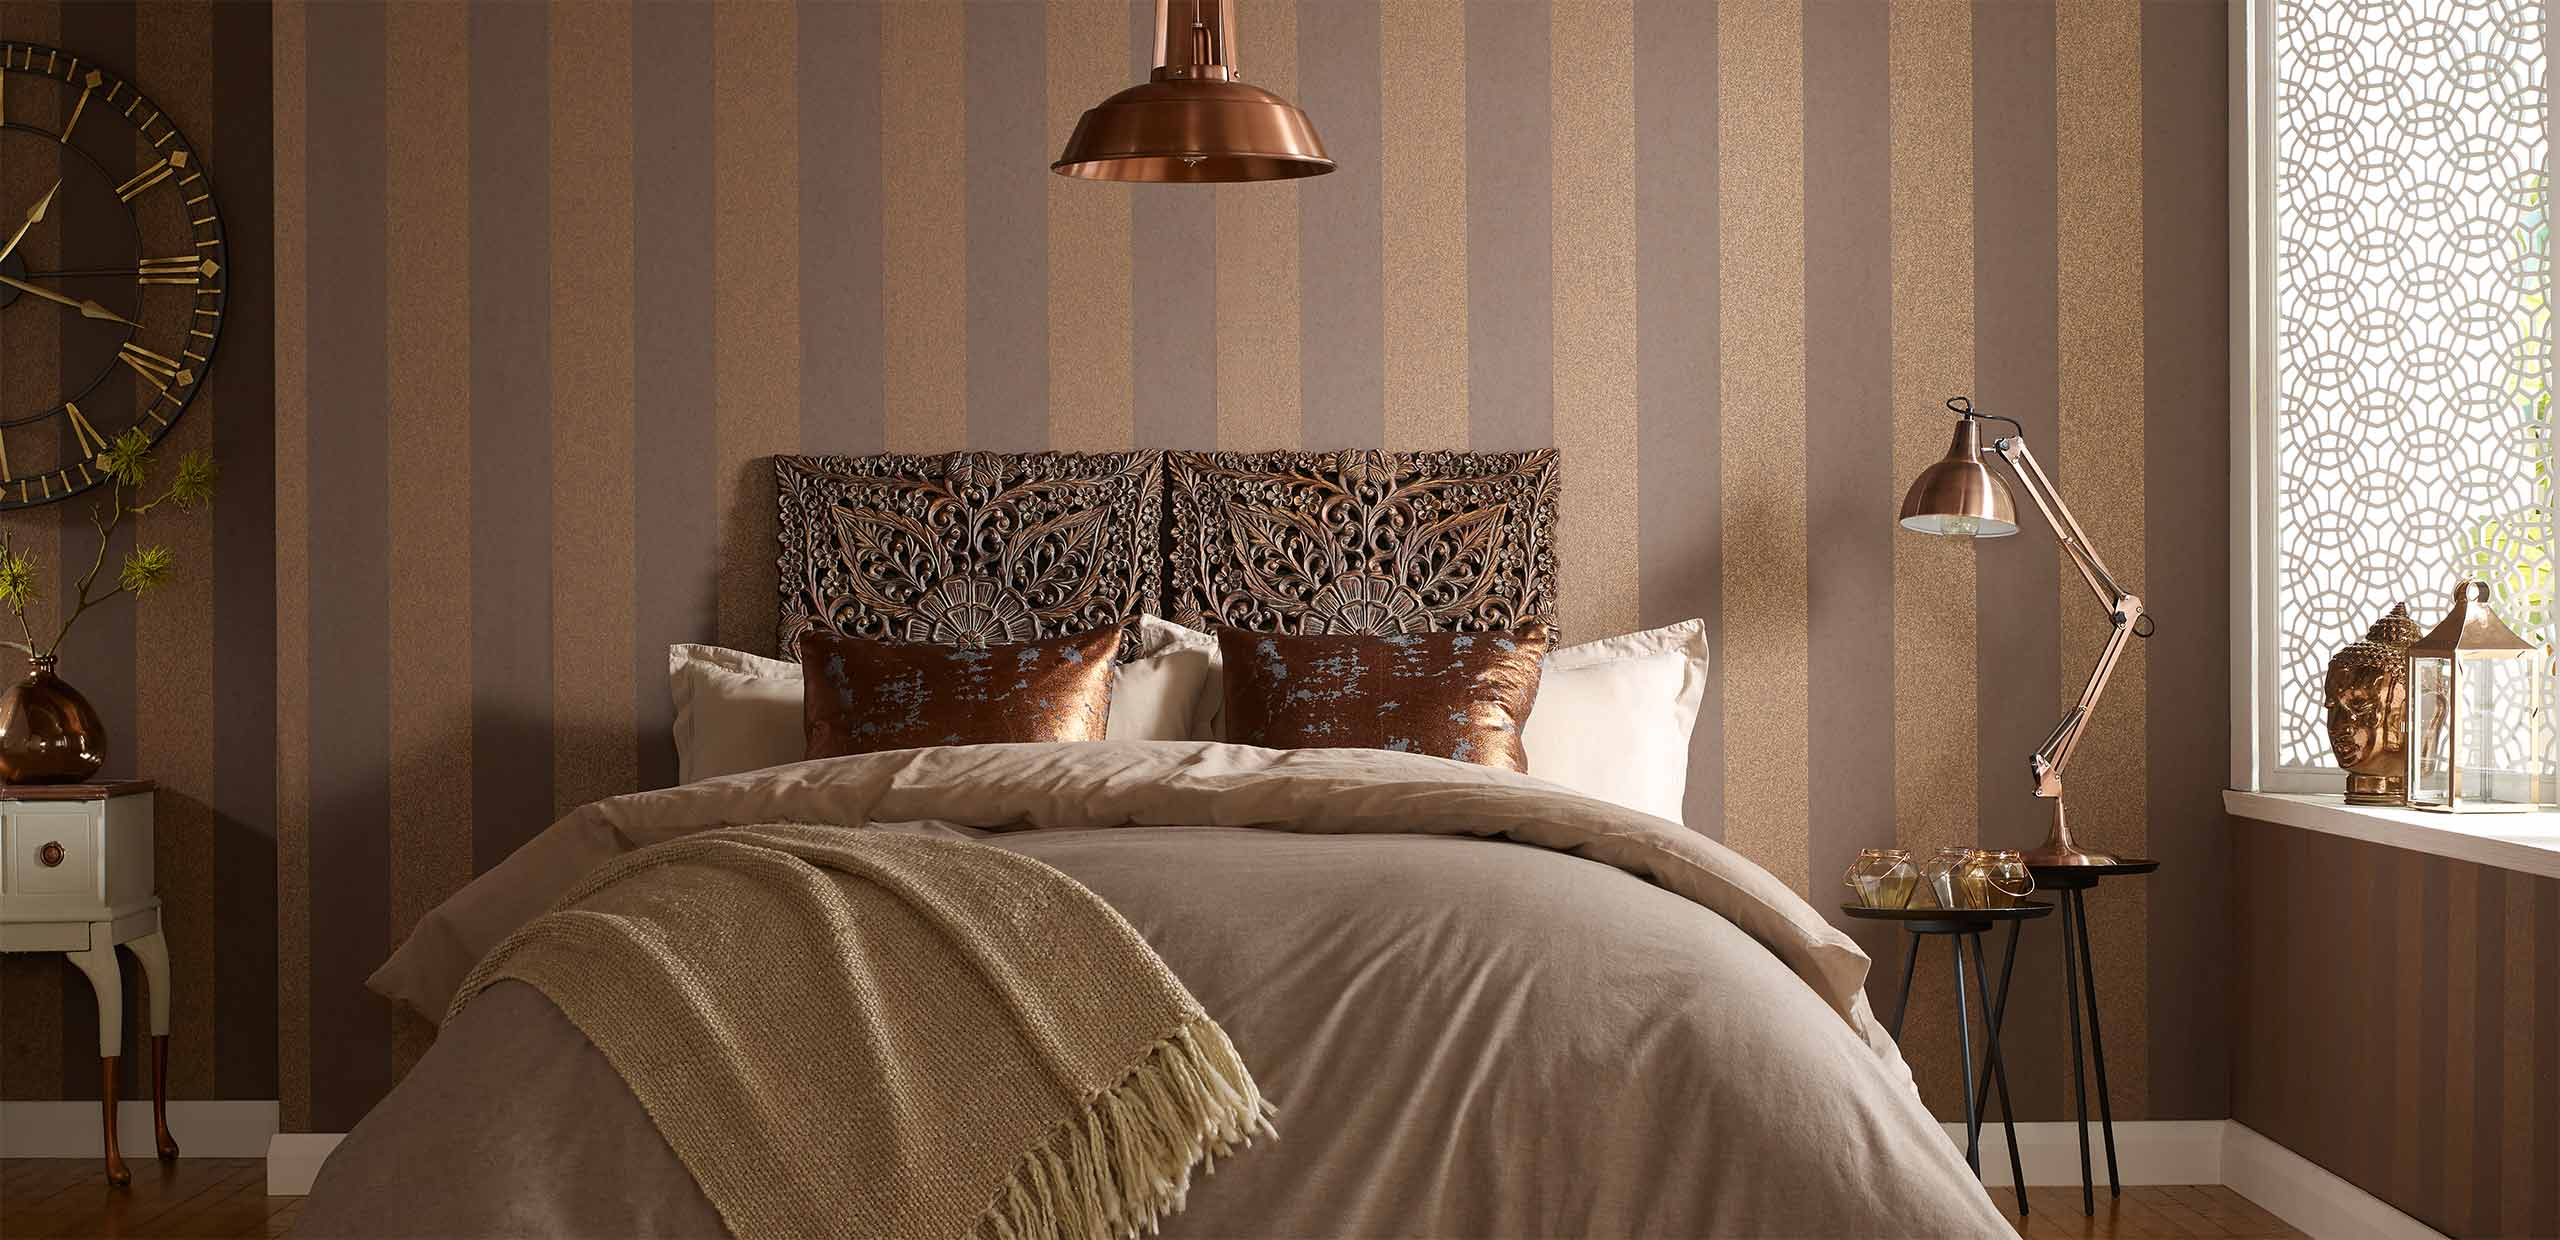 Bedroom ideas bedroom decorations graham brown for Wallpaper for bedrooms ideas